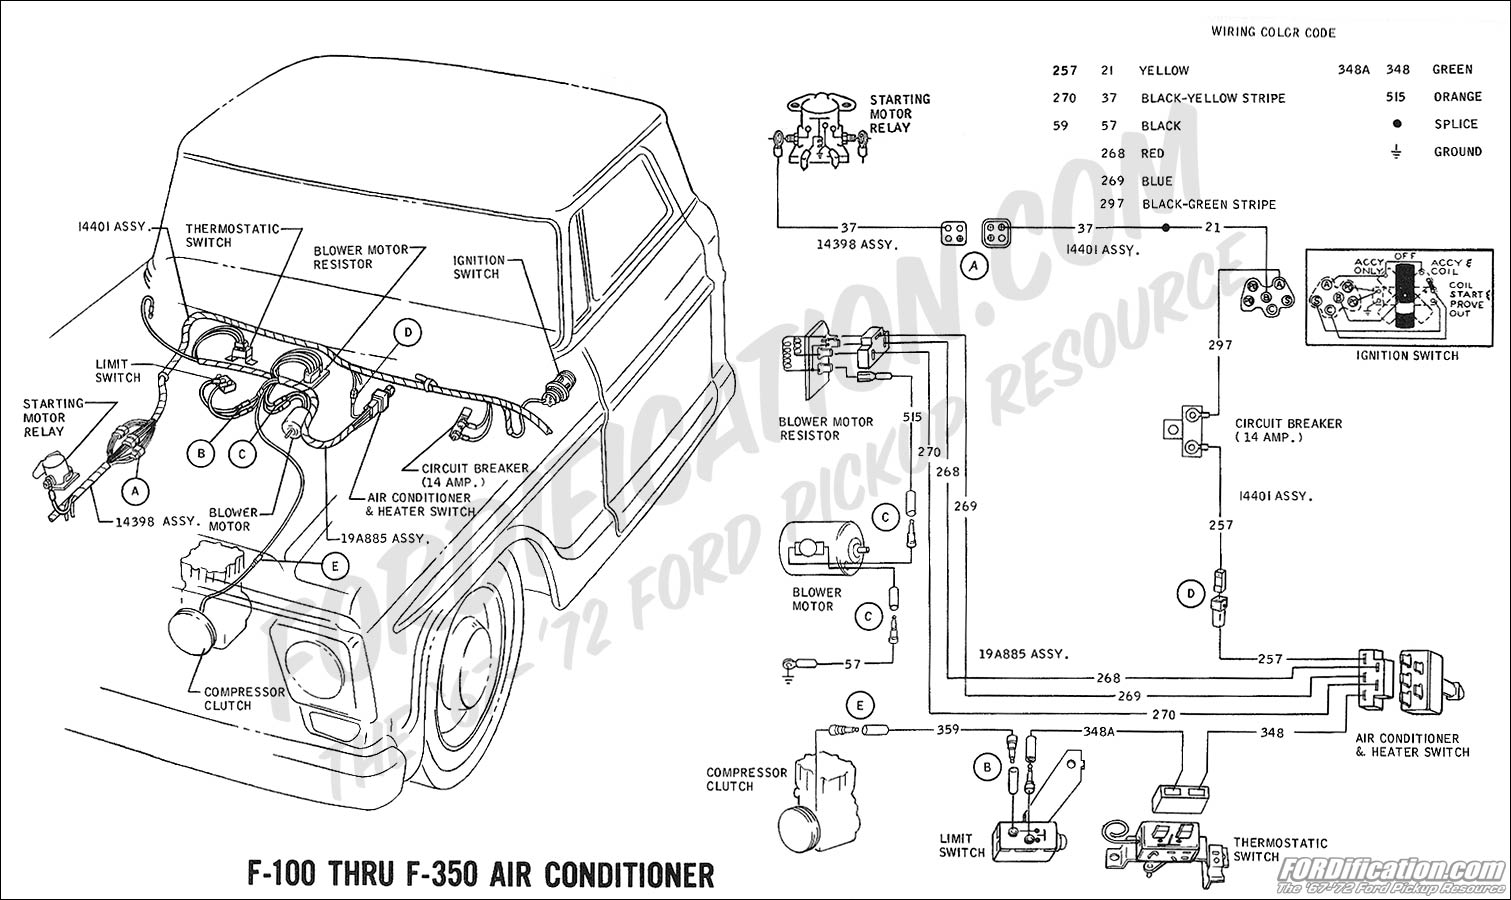 55 Chevy Turn Signal Wiring likewise Windshield Wiper Motor Wiring Diagram in addition Truck gauges furthermore 787130 Glow Plugs Fuel Cold 4 in addition 77 Chevy Tilt Steering Column Diagram Html. on 83 chevy c10 wiring harness